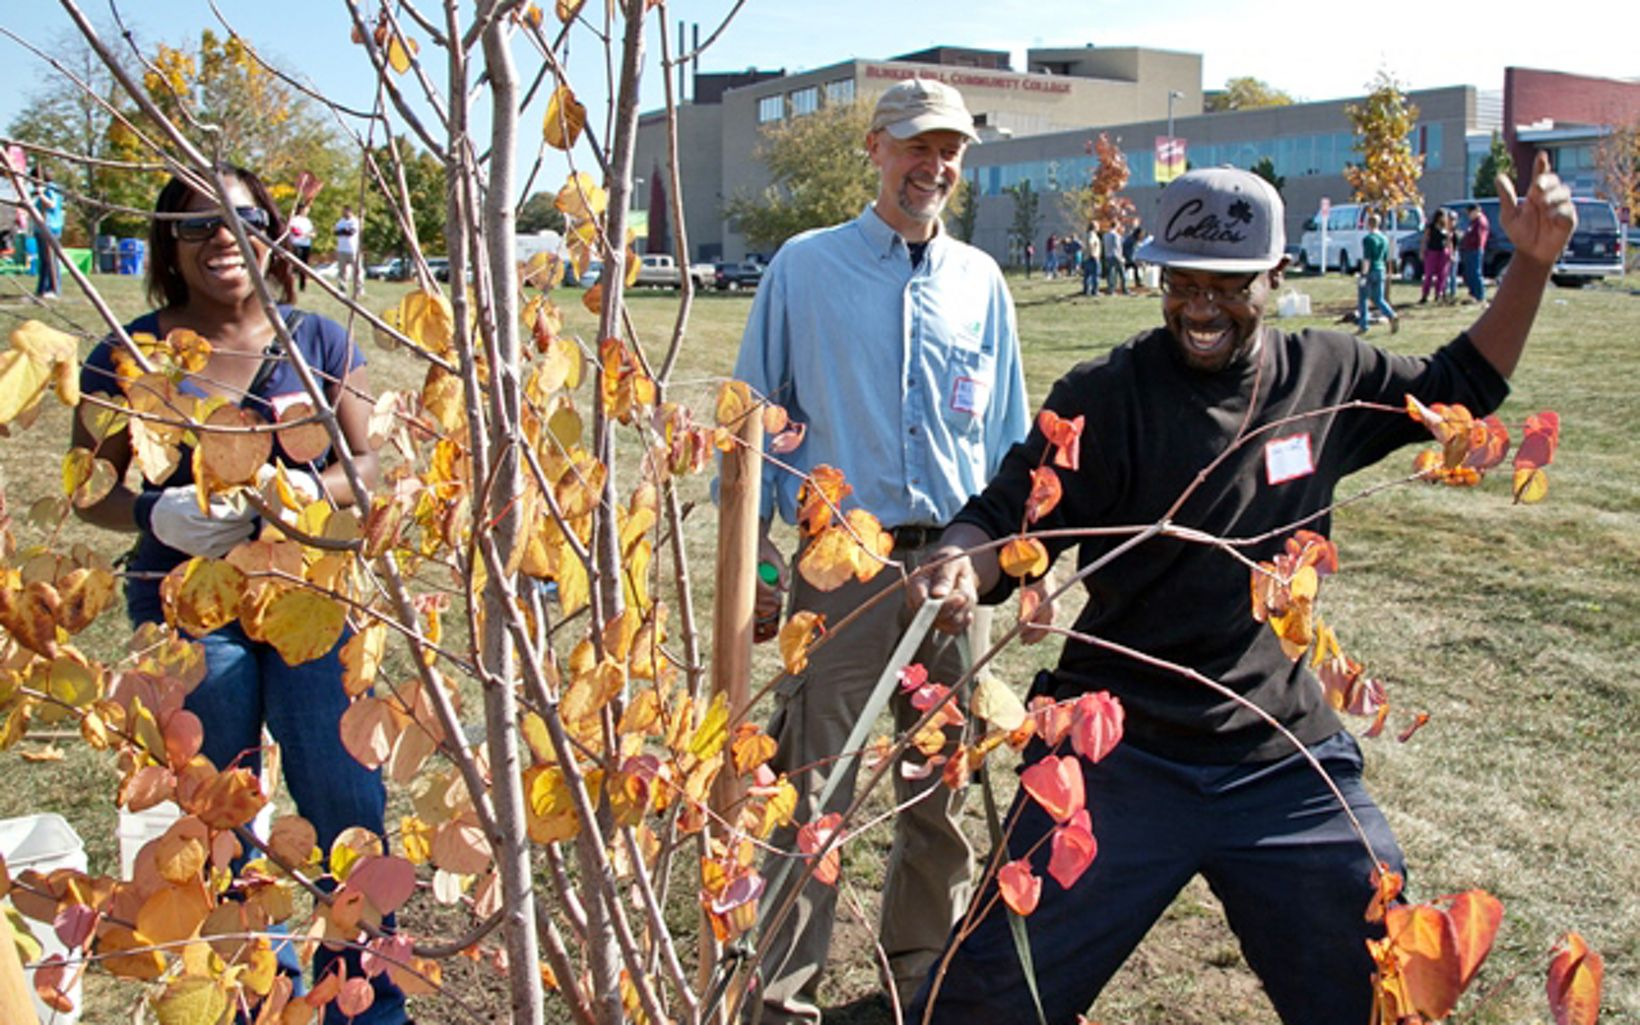 Volunteers help plant trees at a 2013 Odwalla and TNC event in Boston, MA.